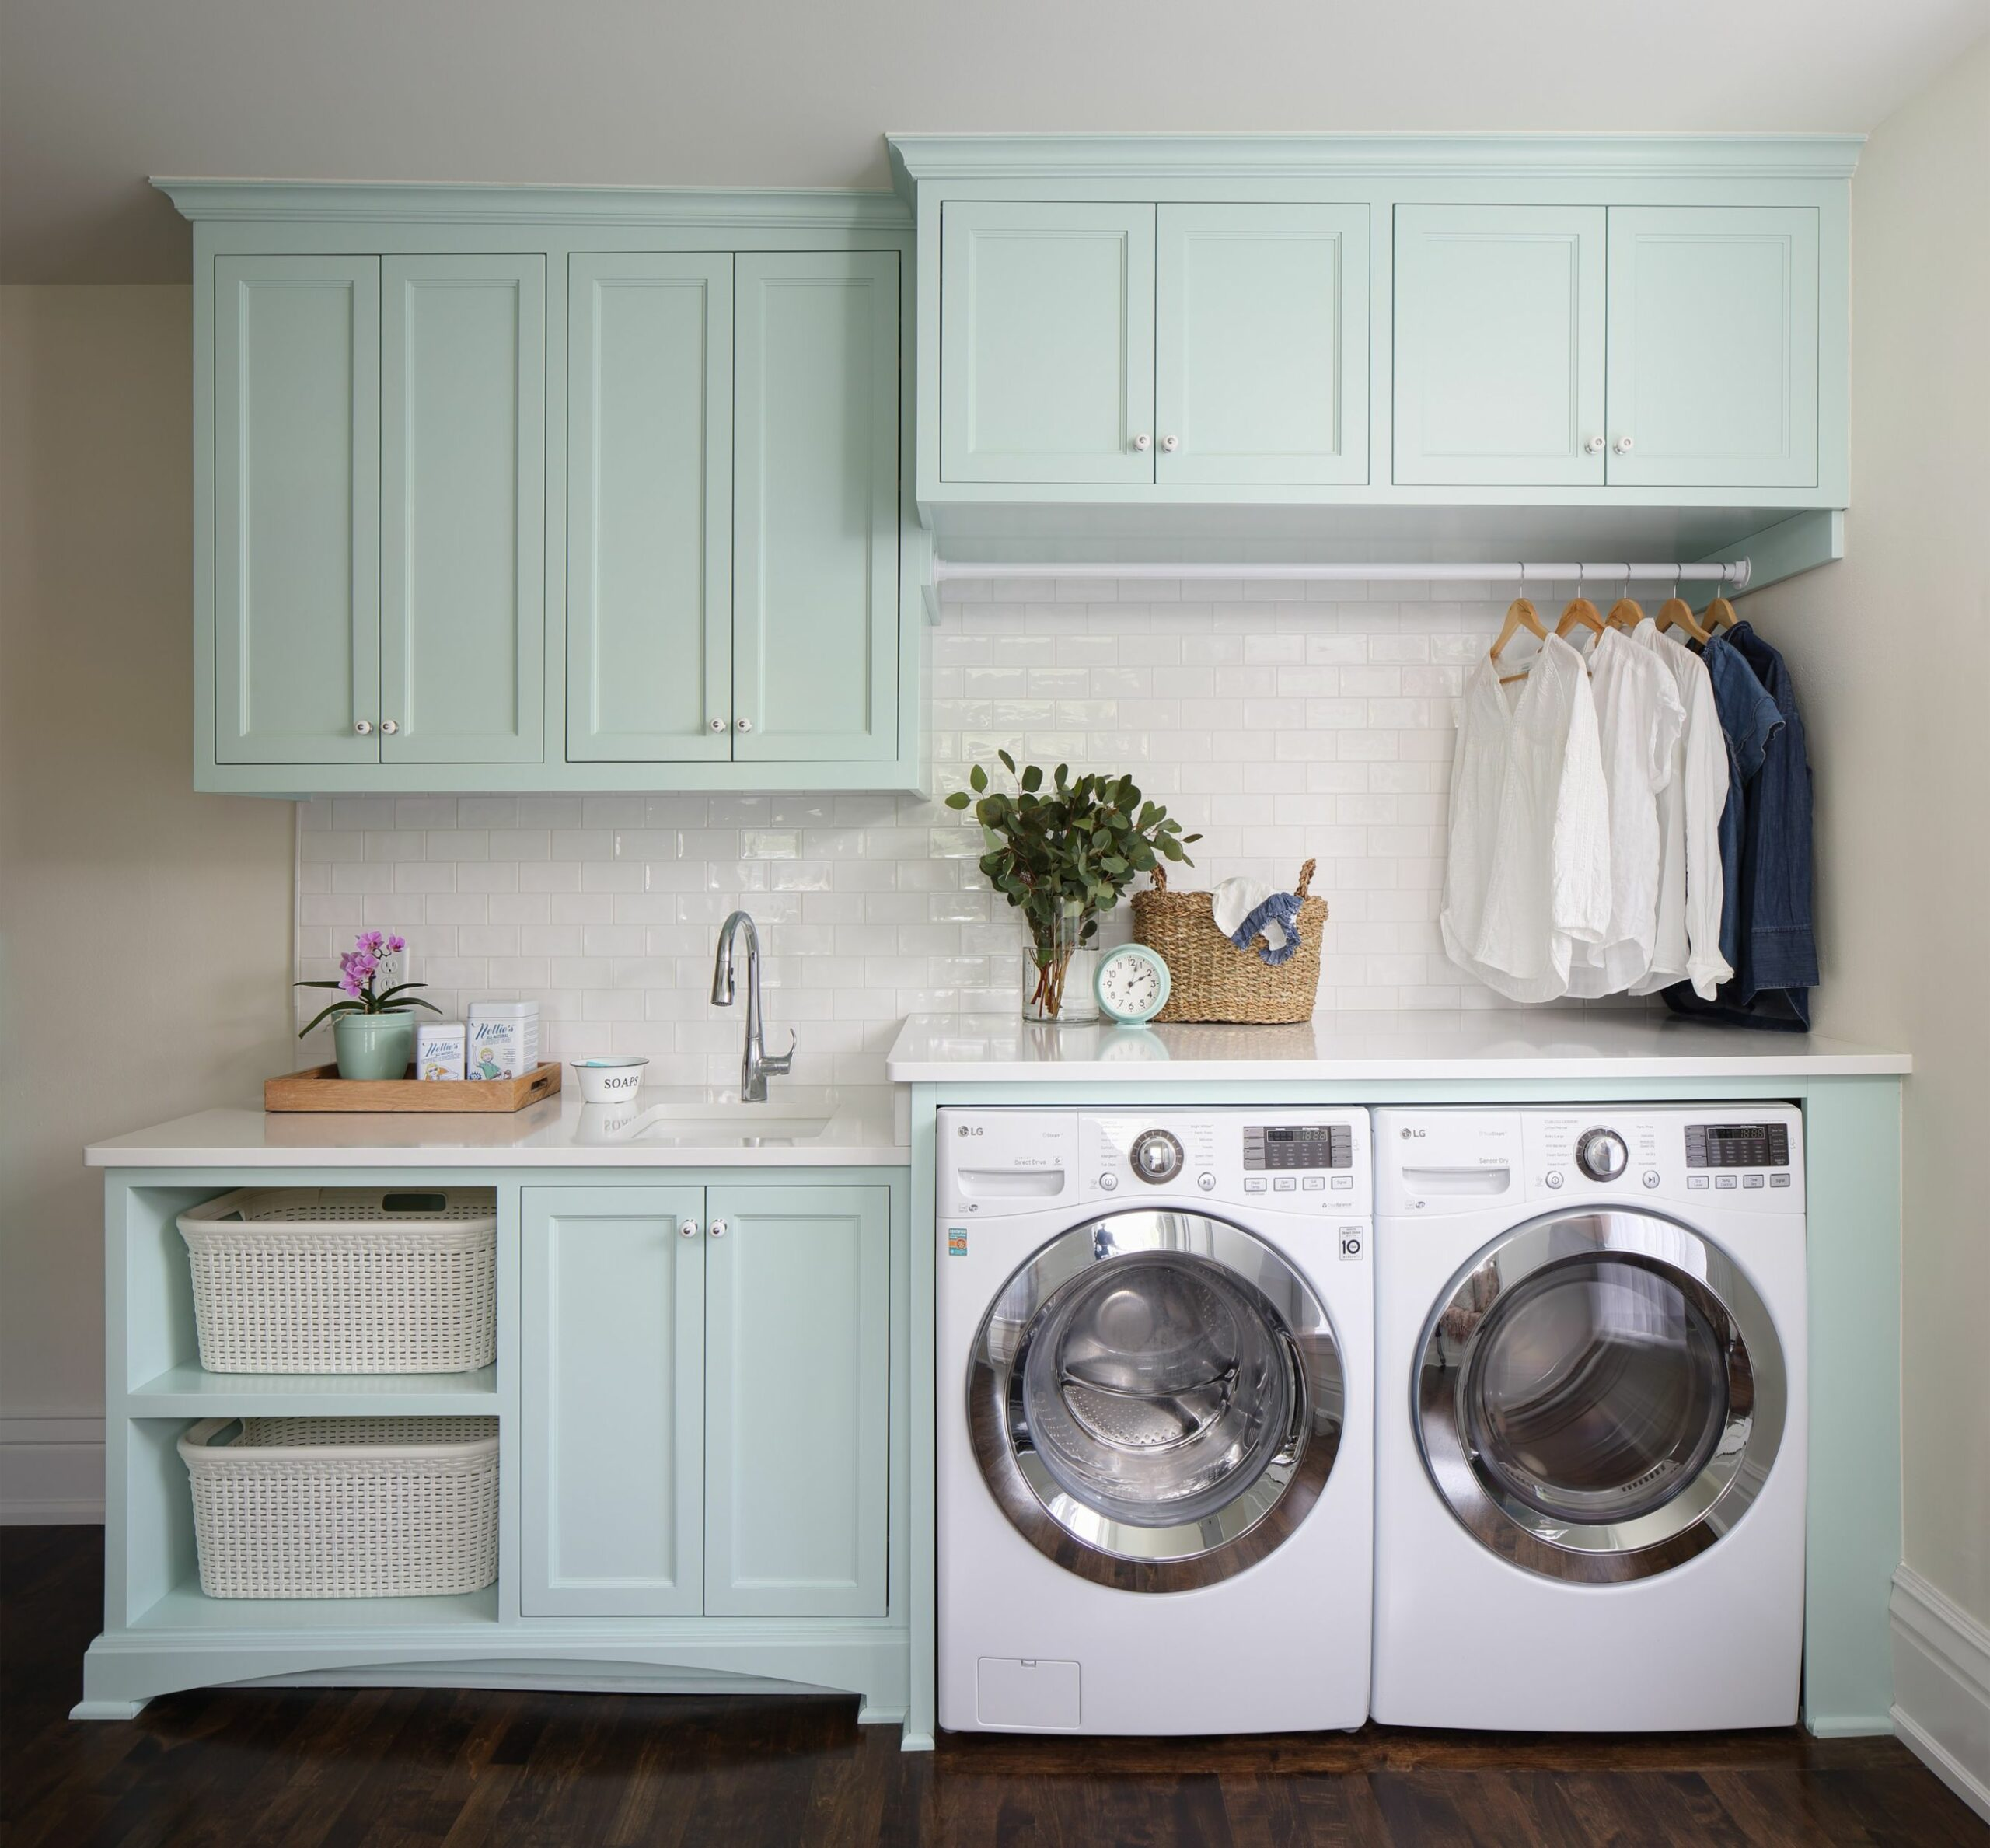 8 Beautiful Traditional Laundry Room Pictures & Ideas - June ..